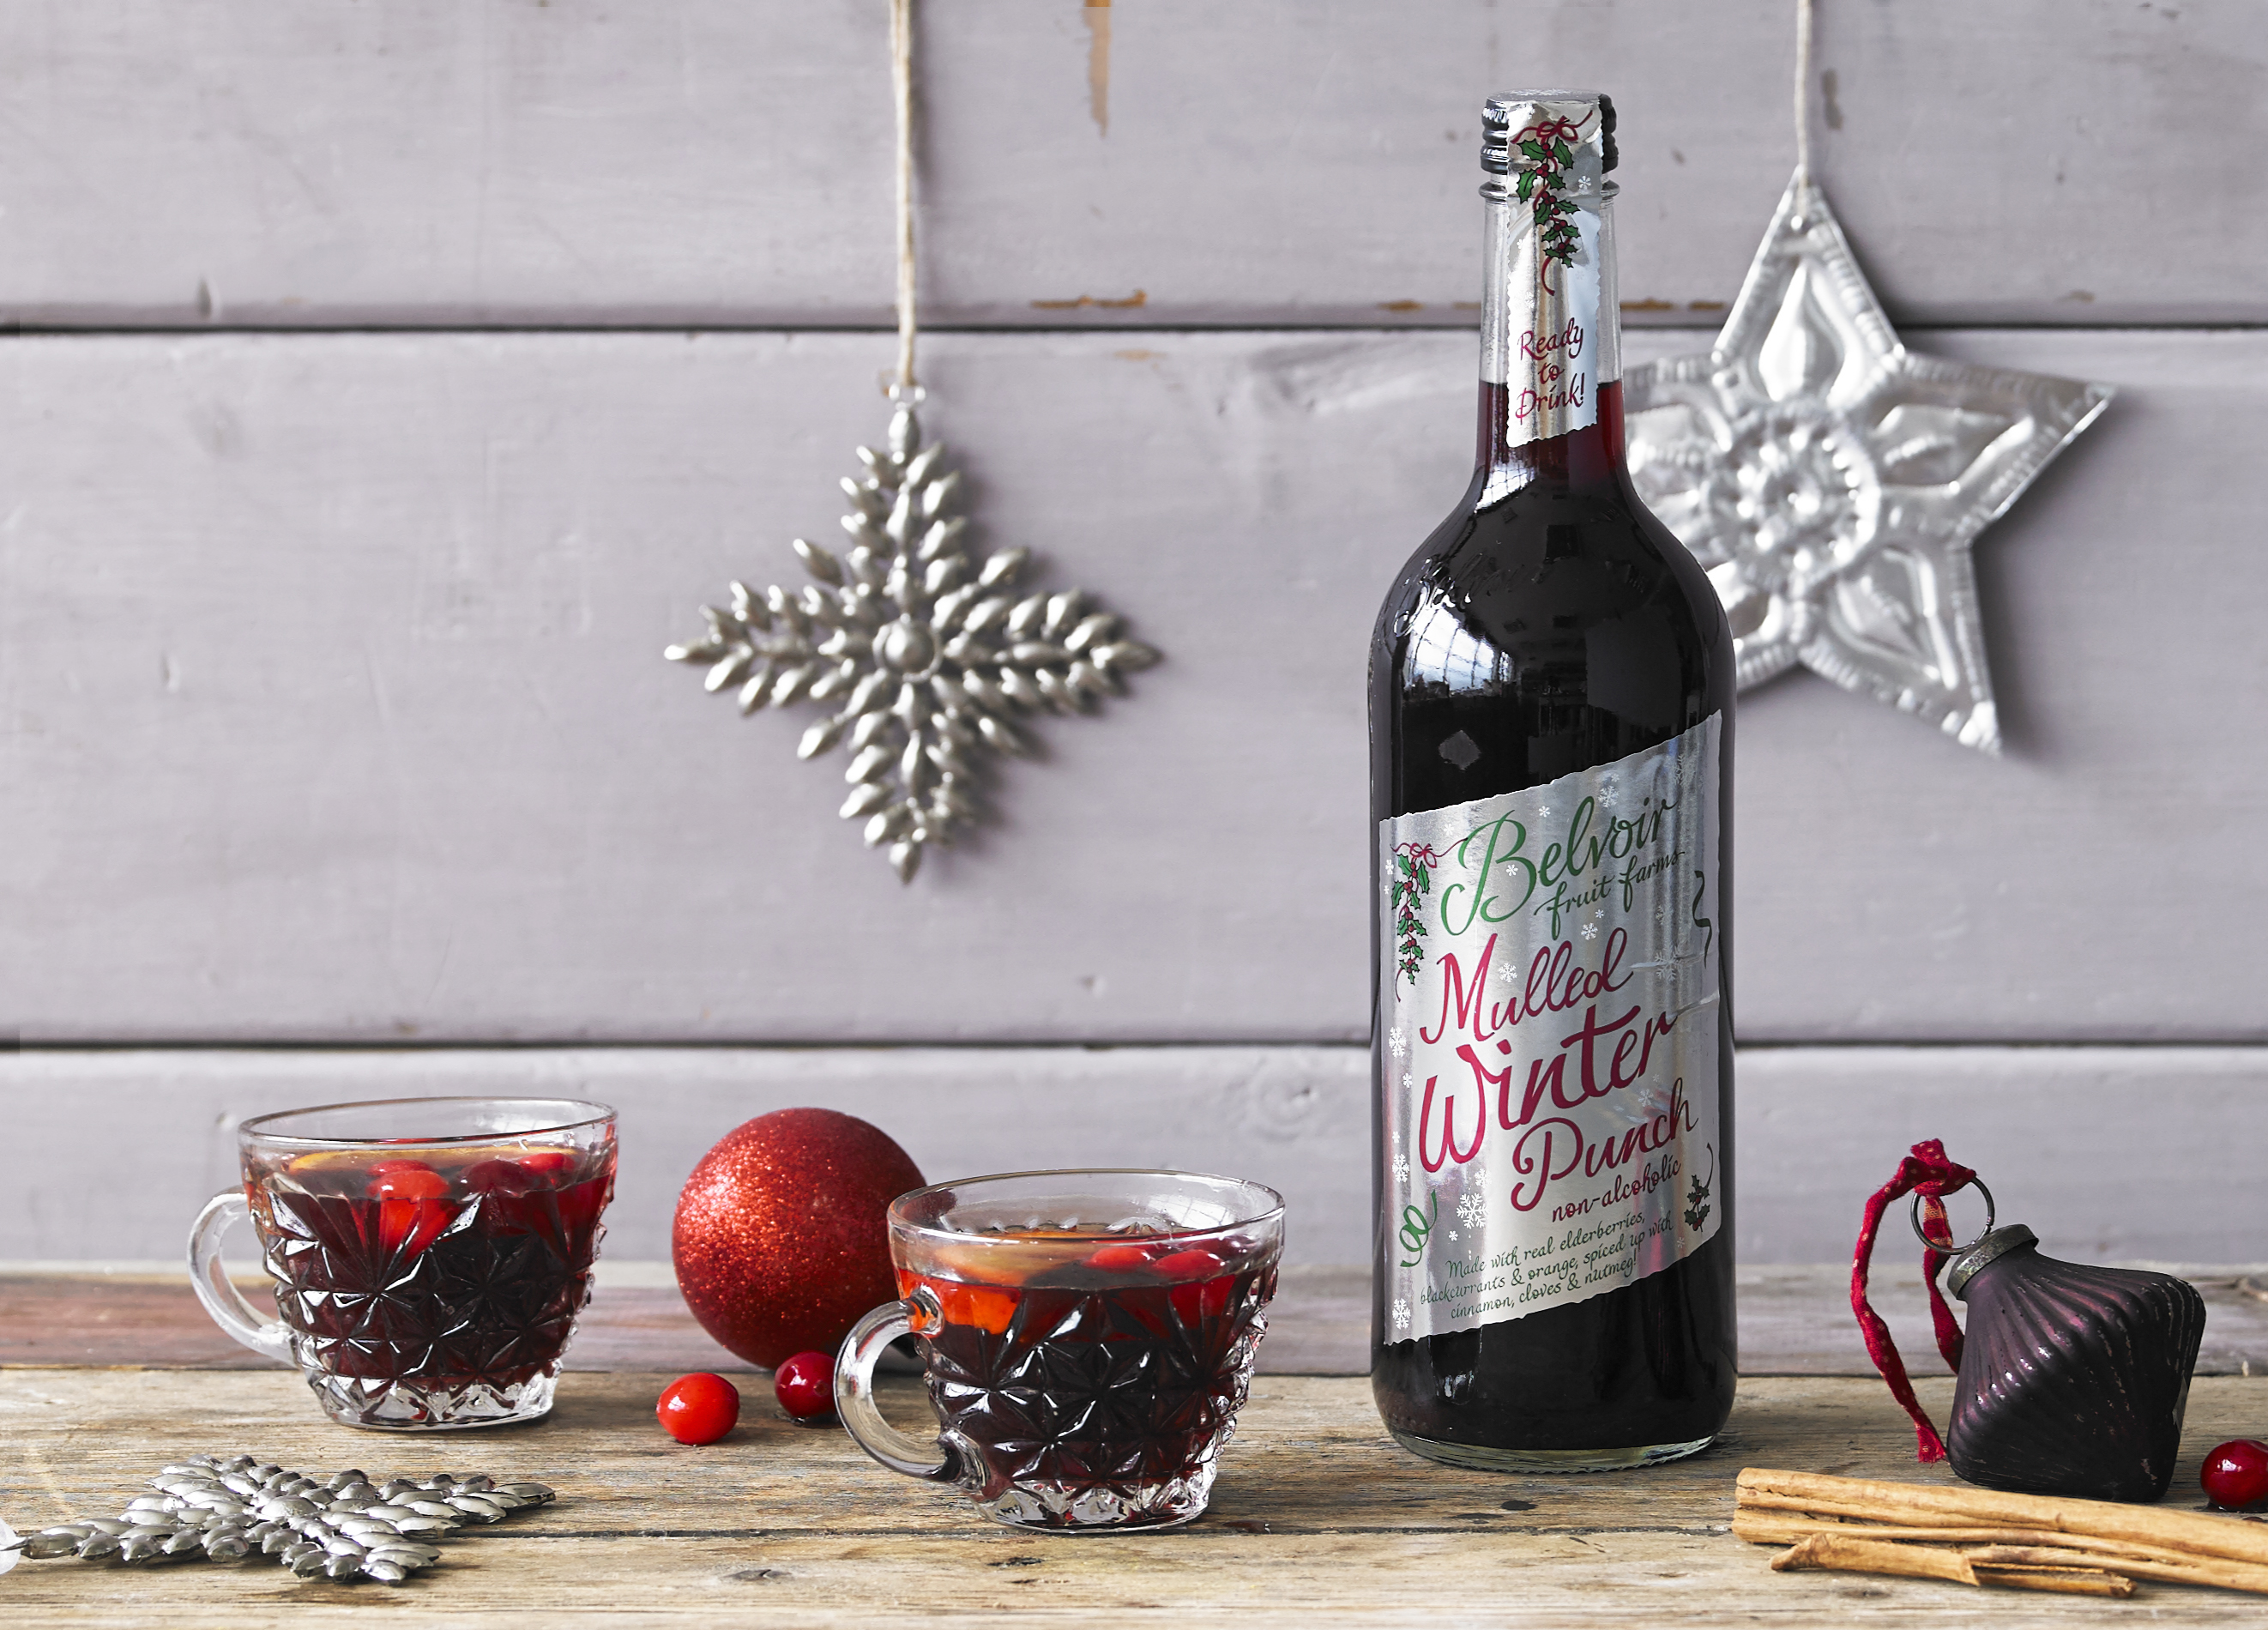 Mulled Winter Punch by Belvoir